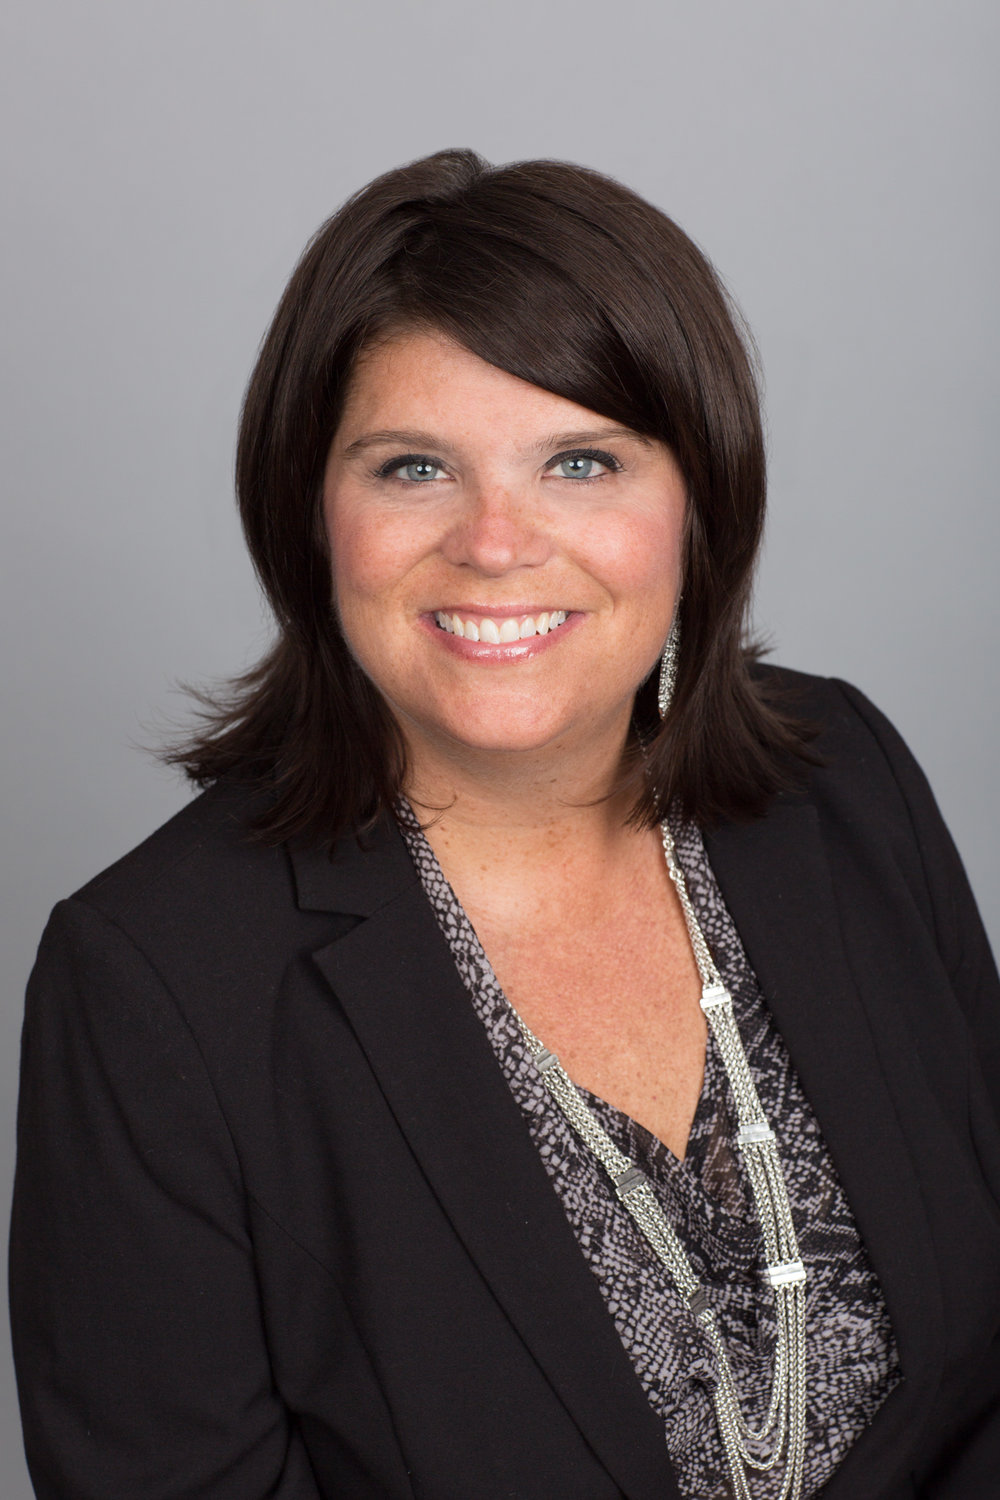 Adrienne Fasano, Advancing Women Executives Leader